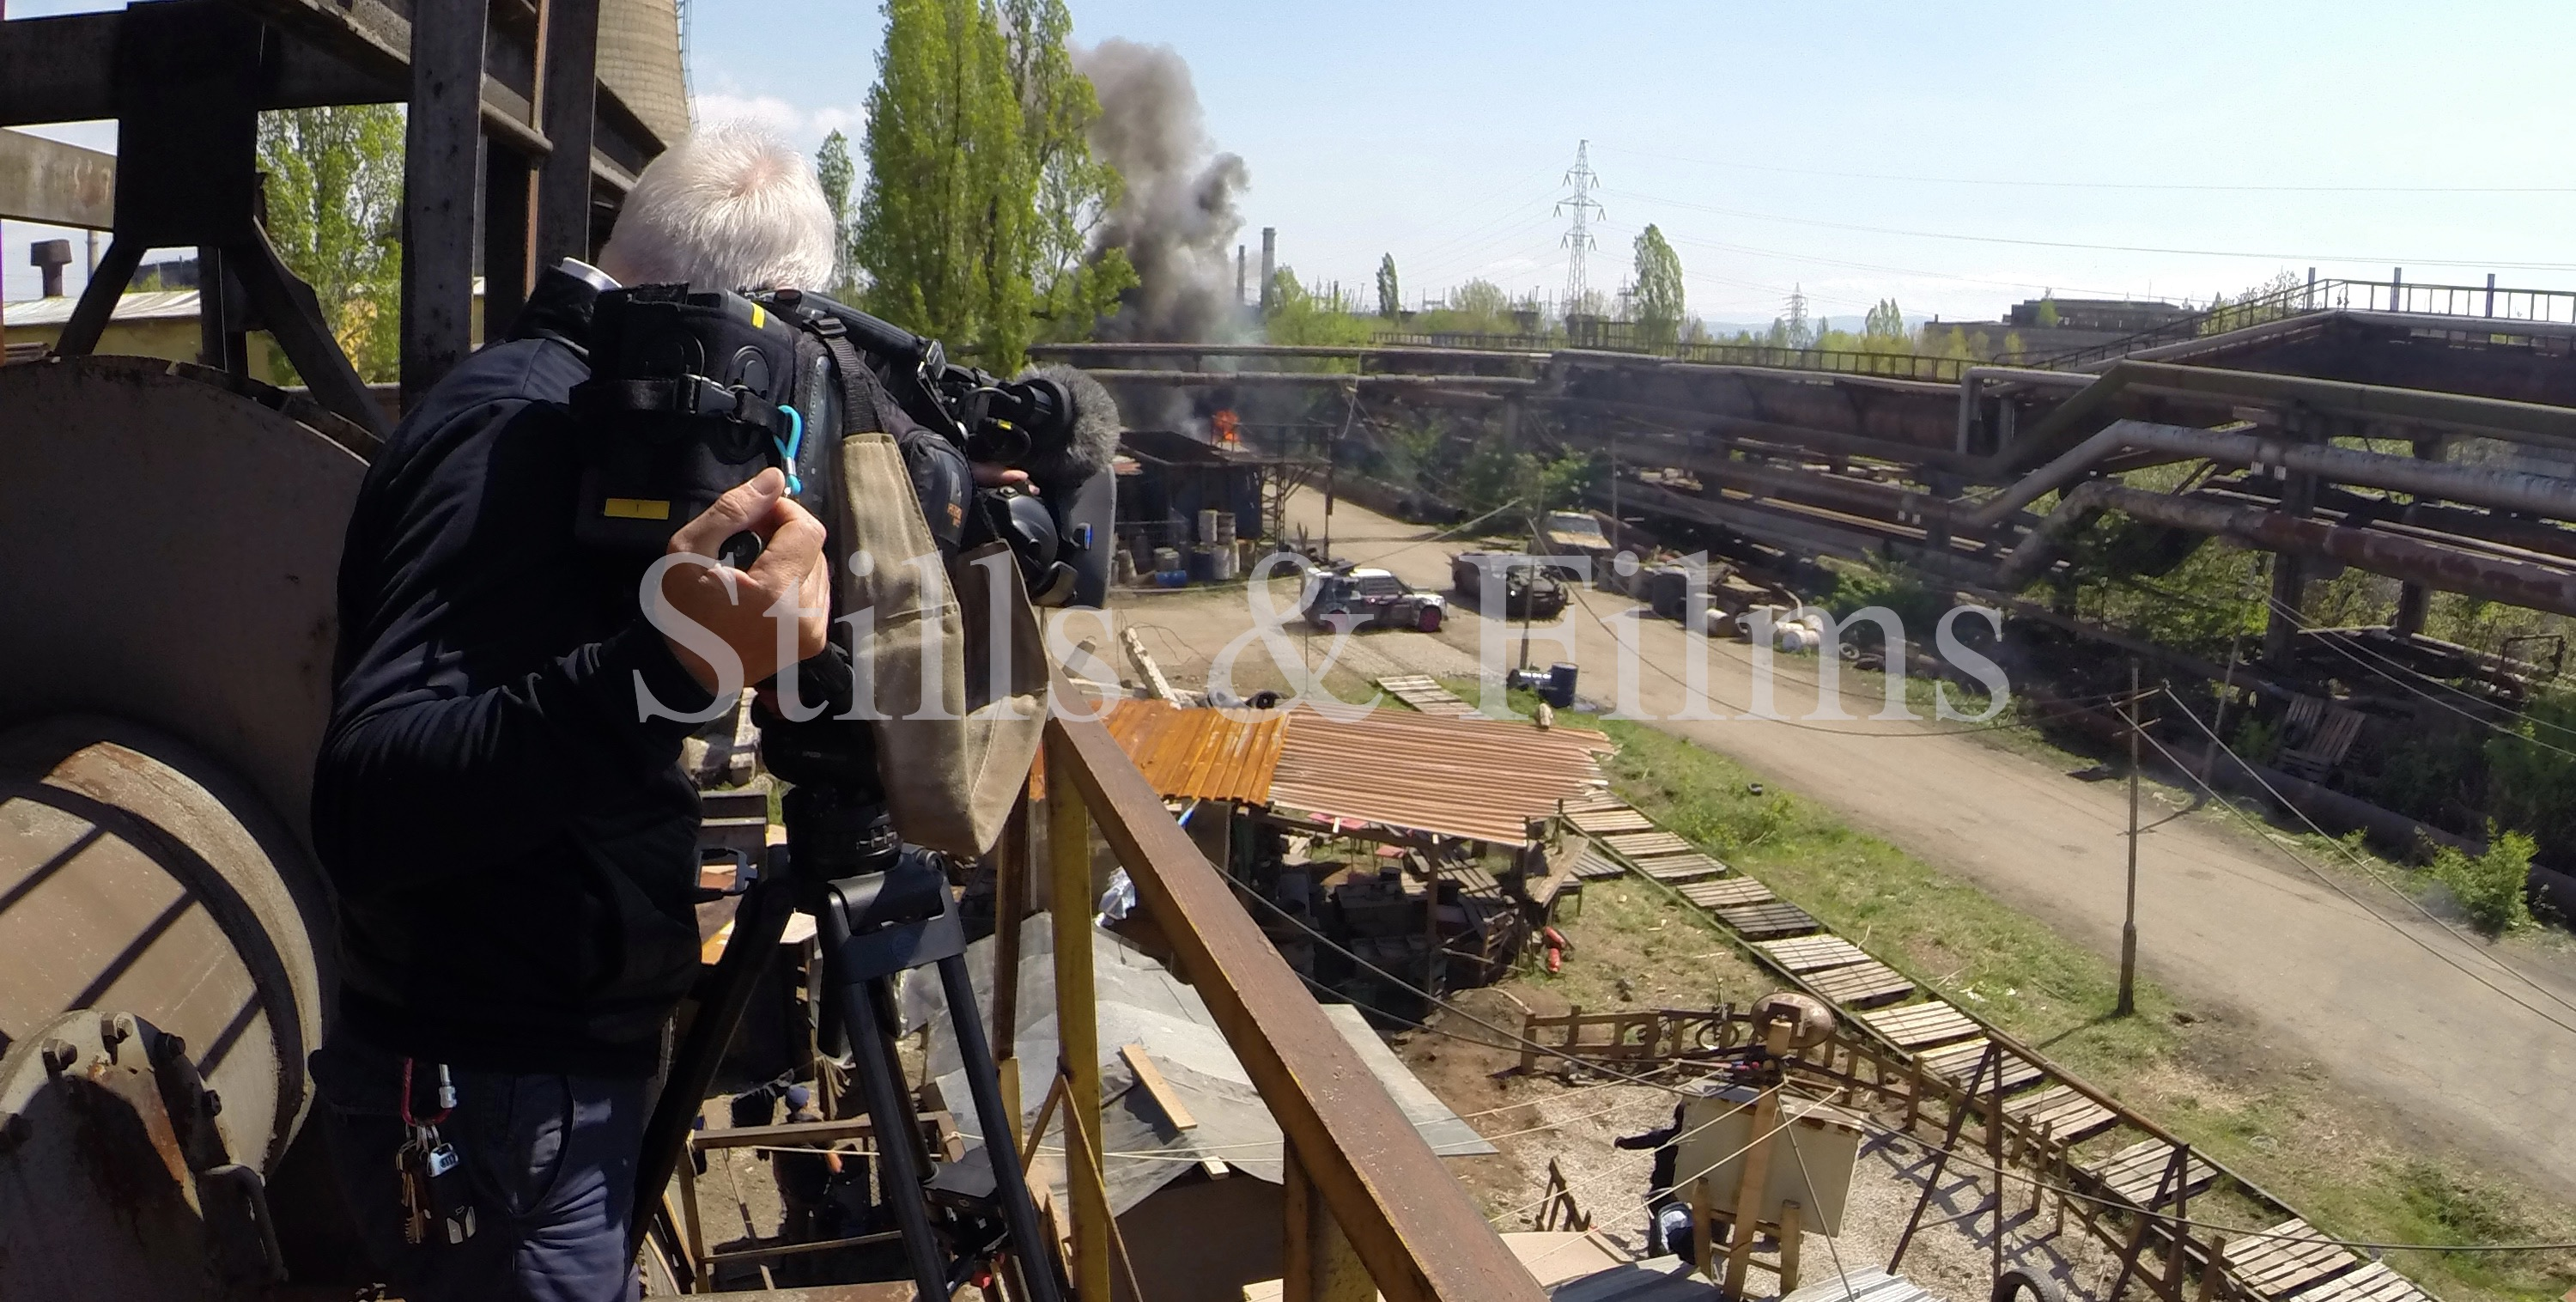 Filming behind the scenes at Death Race 4 somewhere near Sofia in an old, abandoned factory